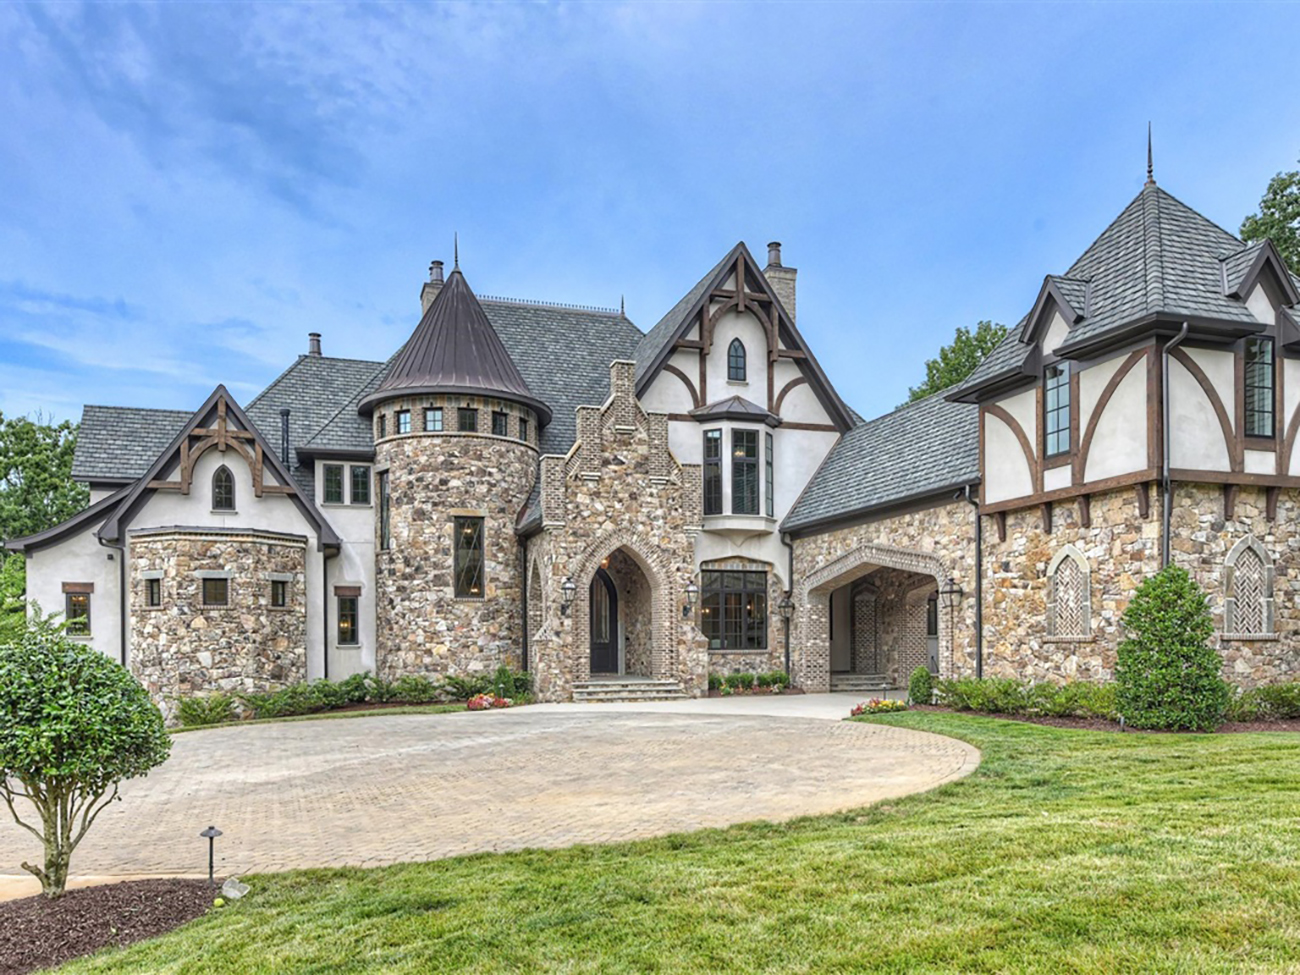 The luxury real estate market in Lake Norman is booming